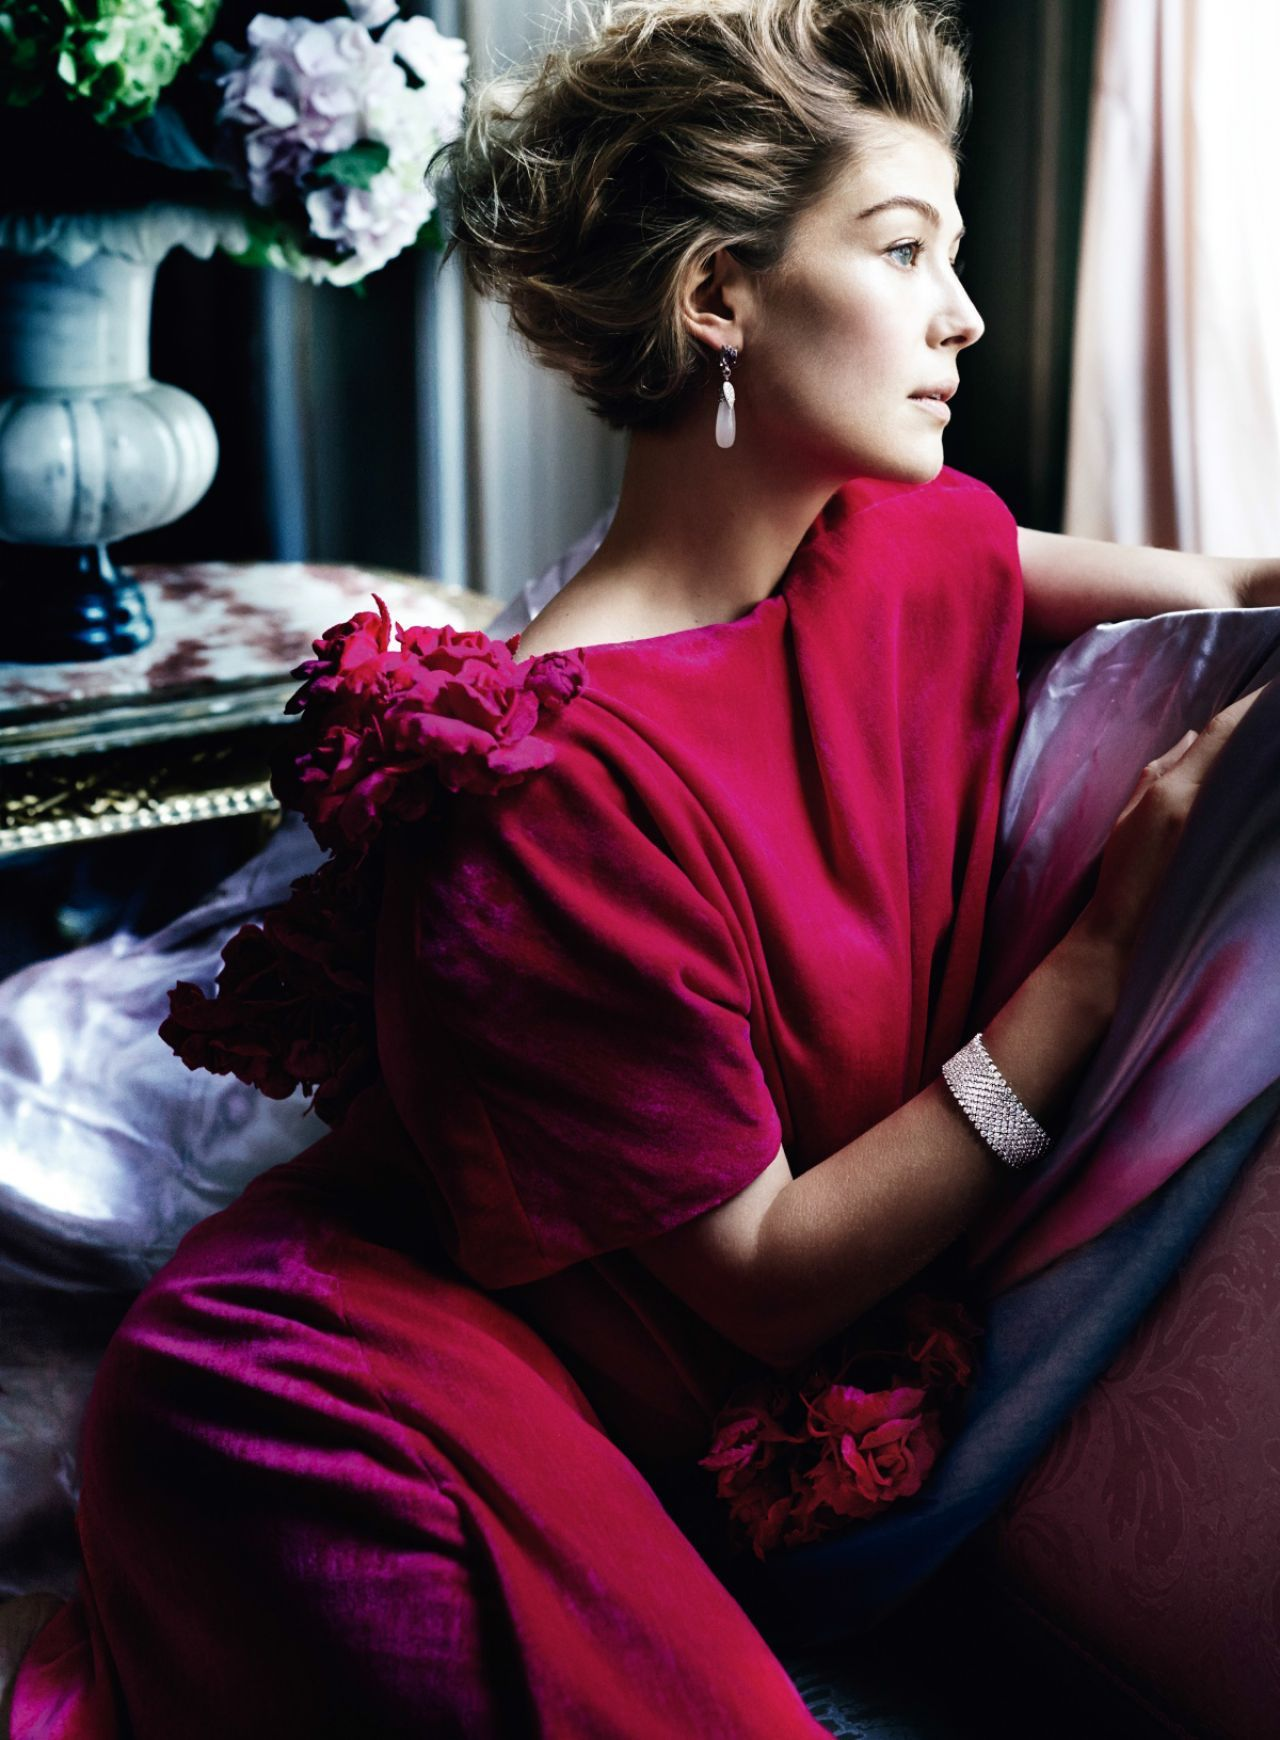 Rosamund Pike U2013 Photoshoot For Vanity Fair Magazine February 2015